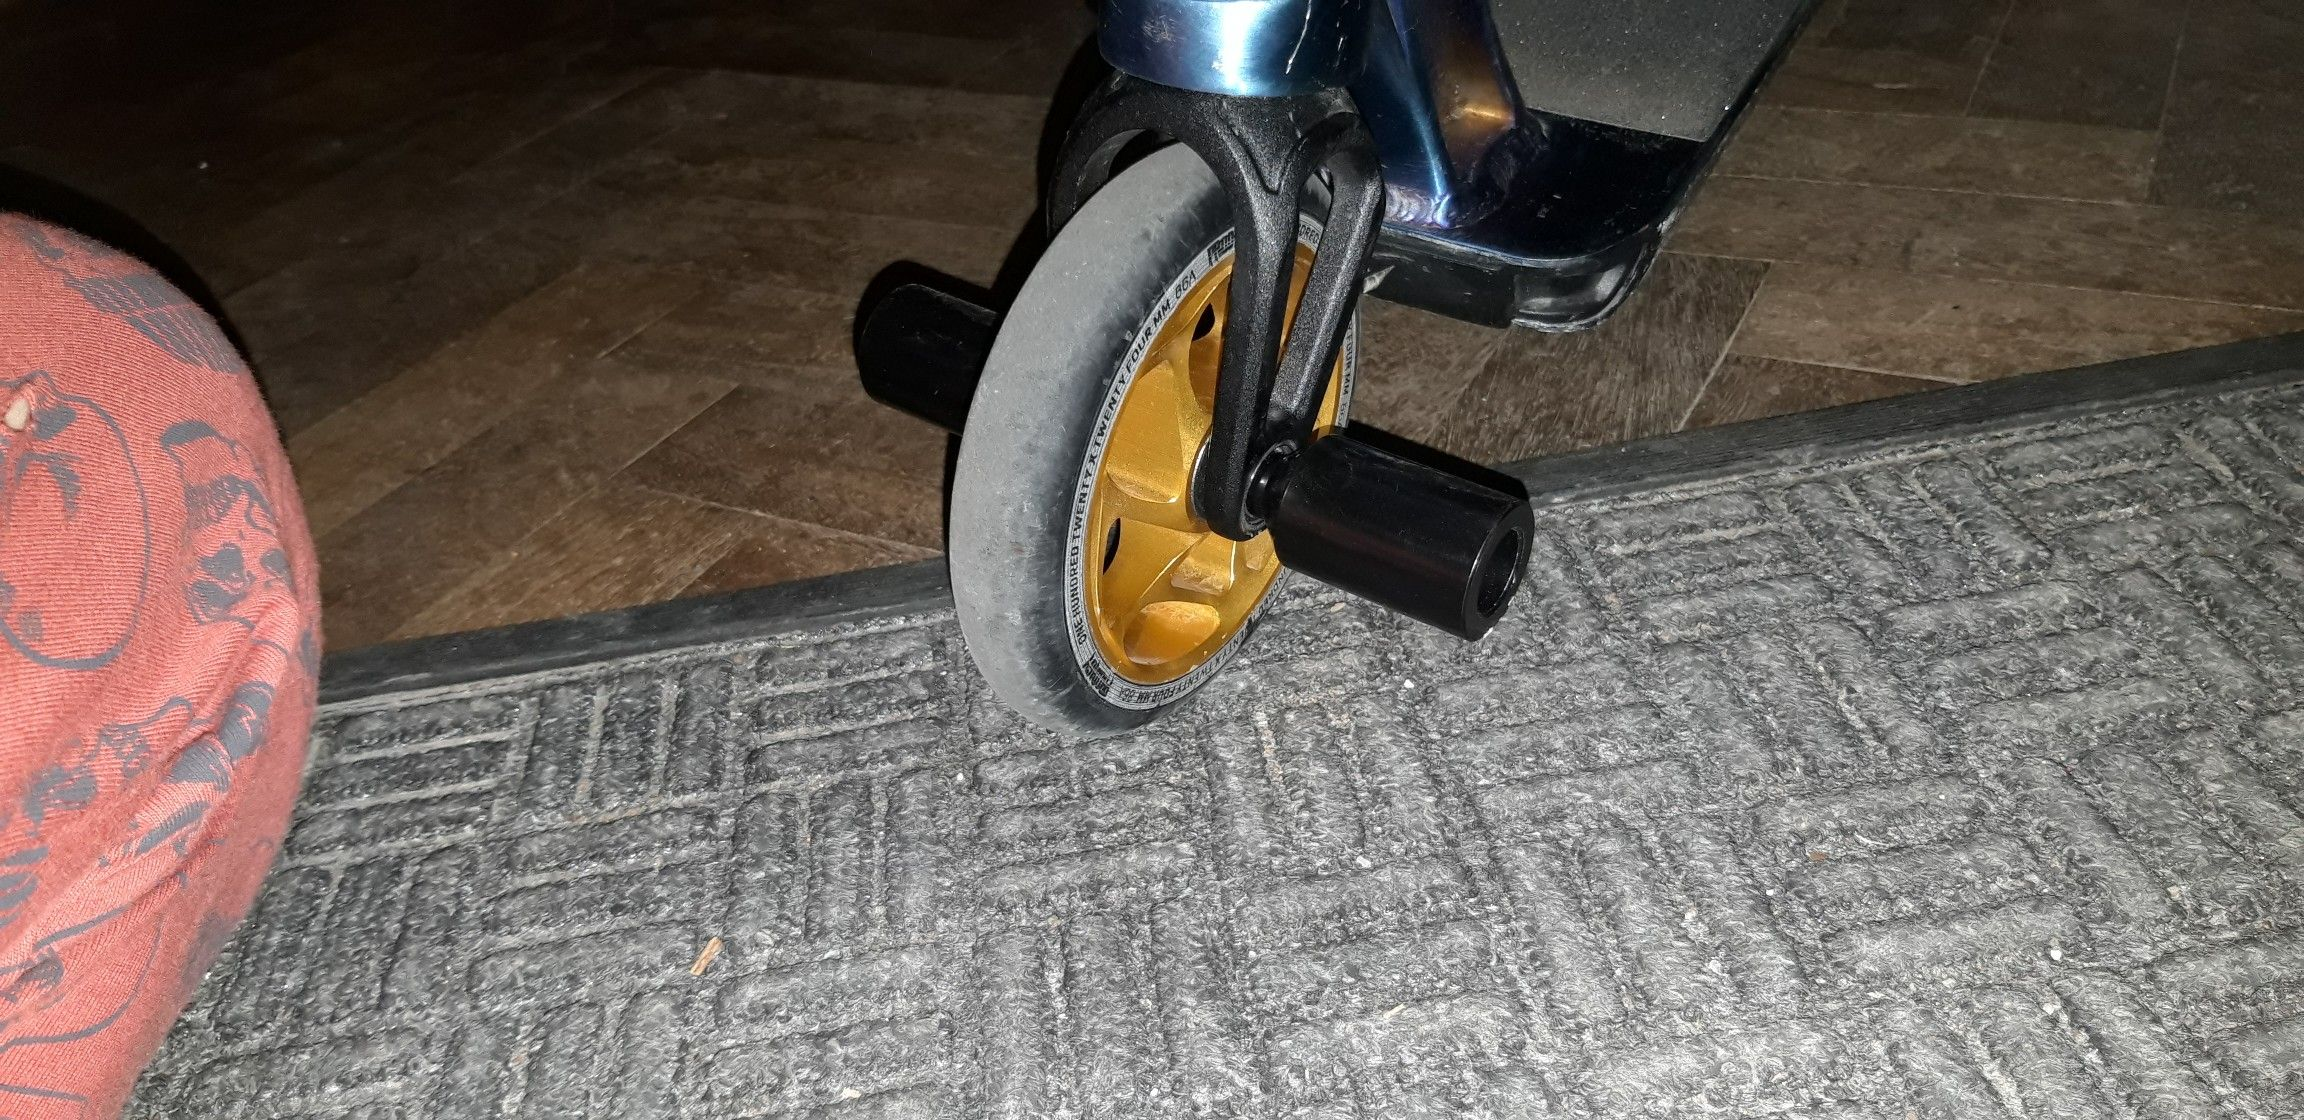 Scooter stunt pegs in 2020 Home appliances, Peg, Scooter